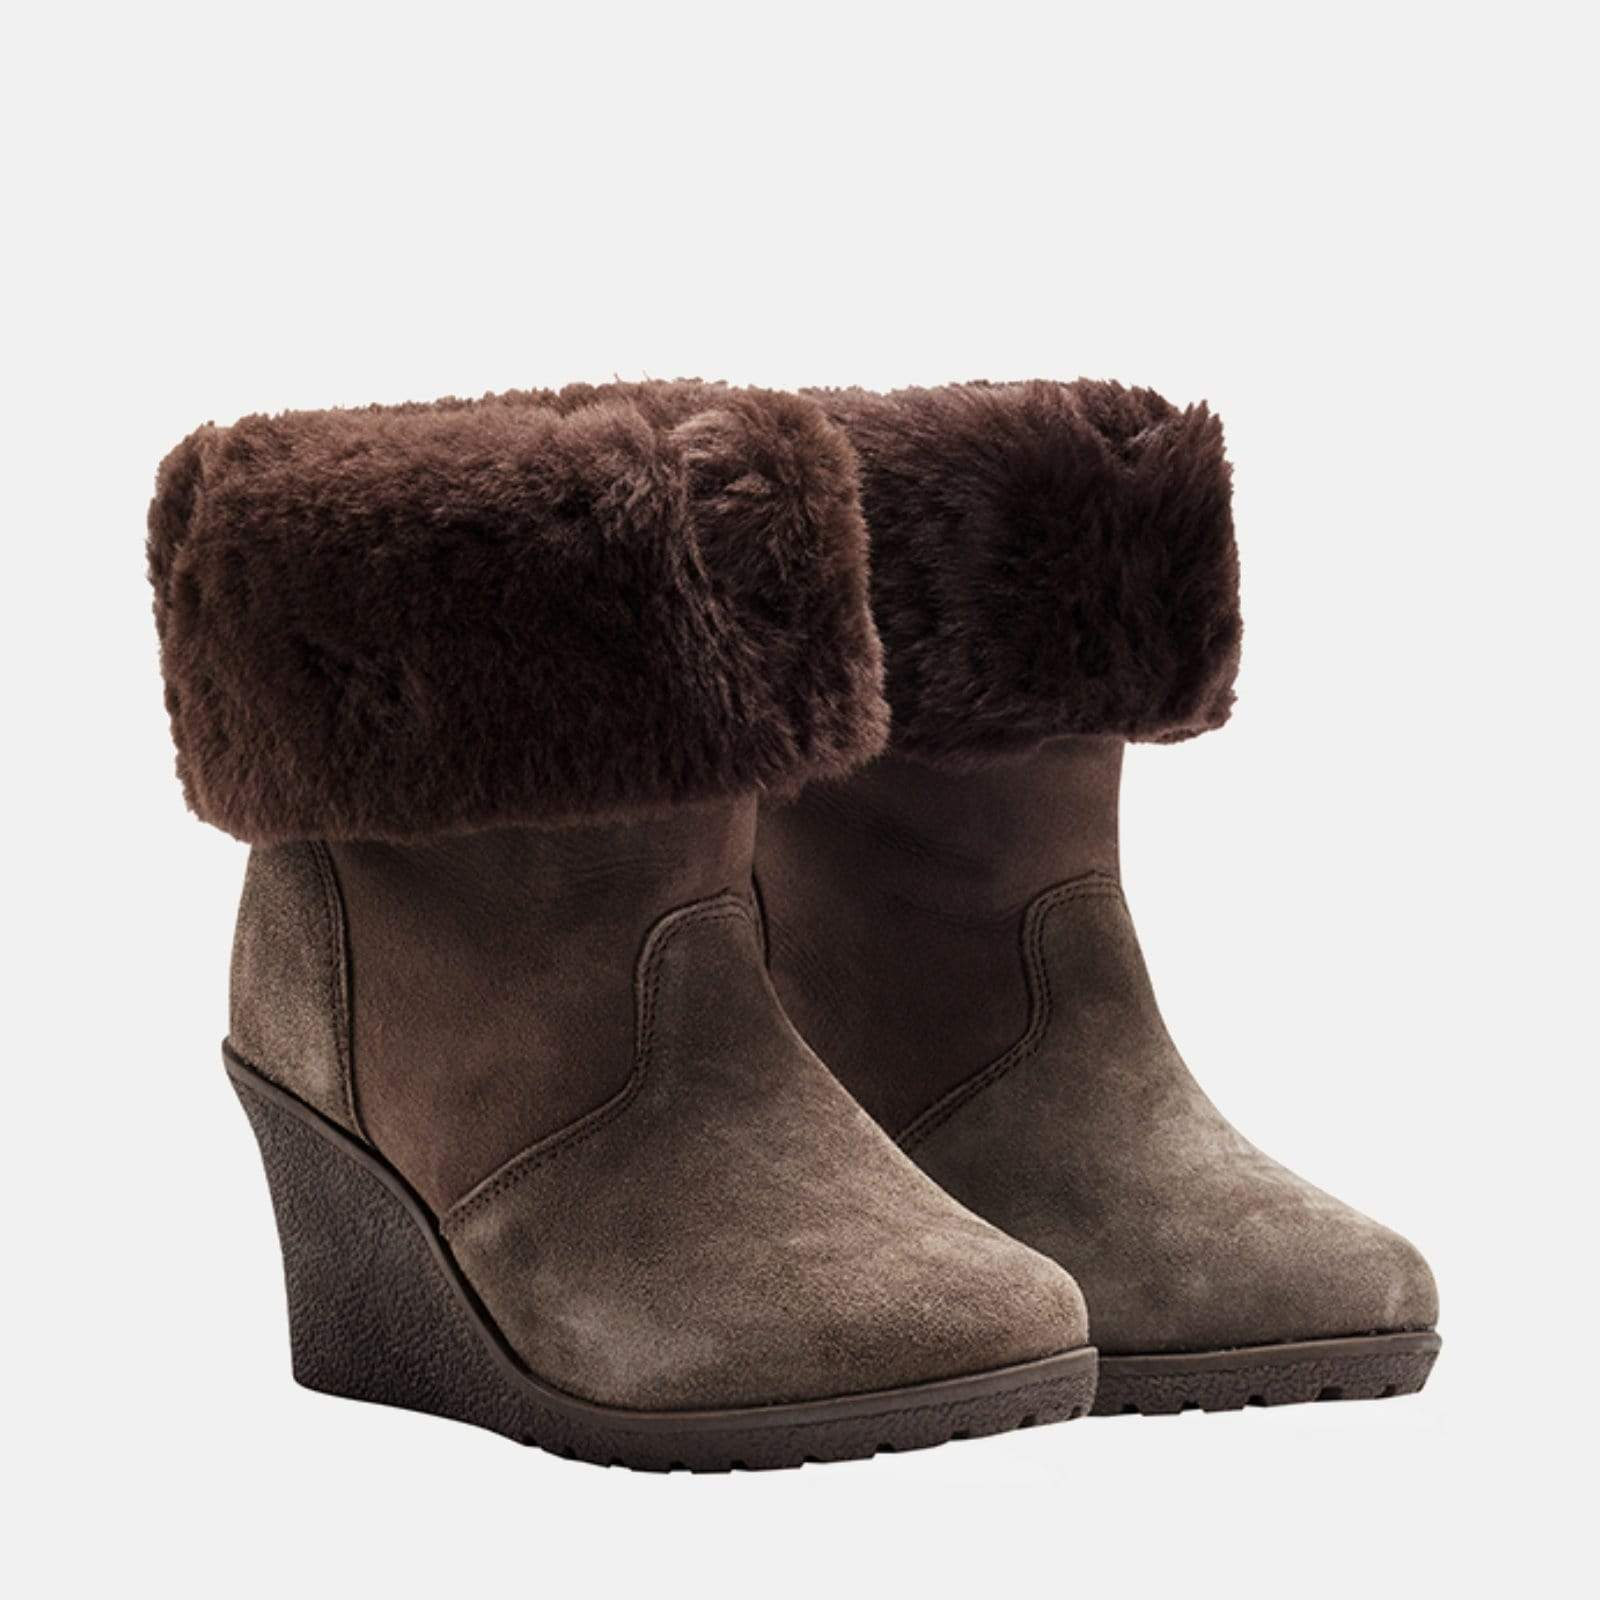 Redfoot Footwear LENNOX BROWN - AUSTRALIAN SHEEPSKIN